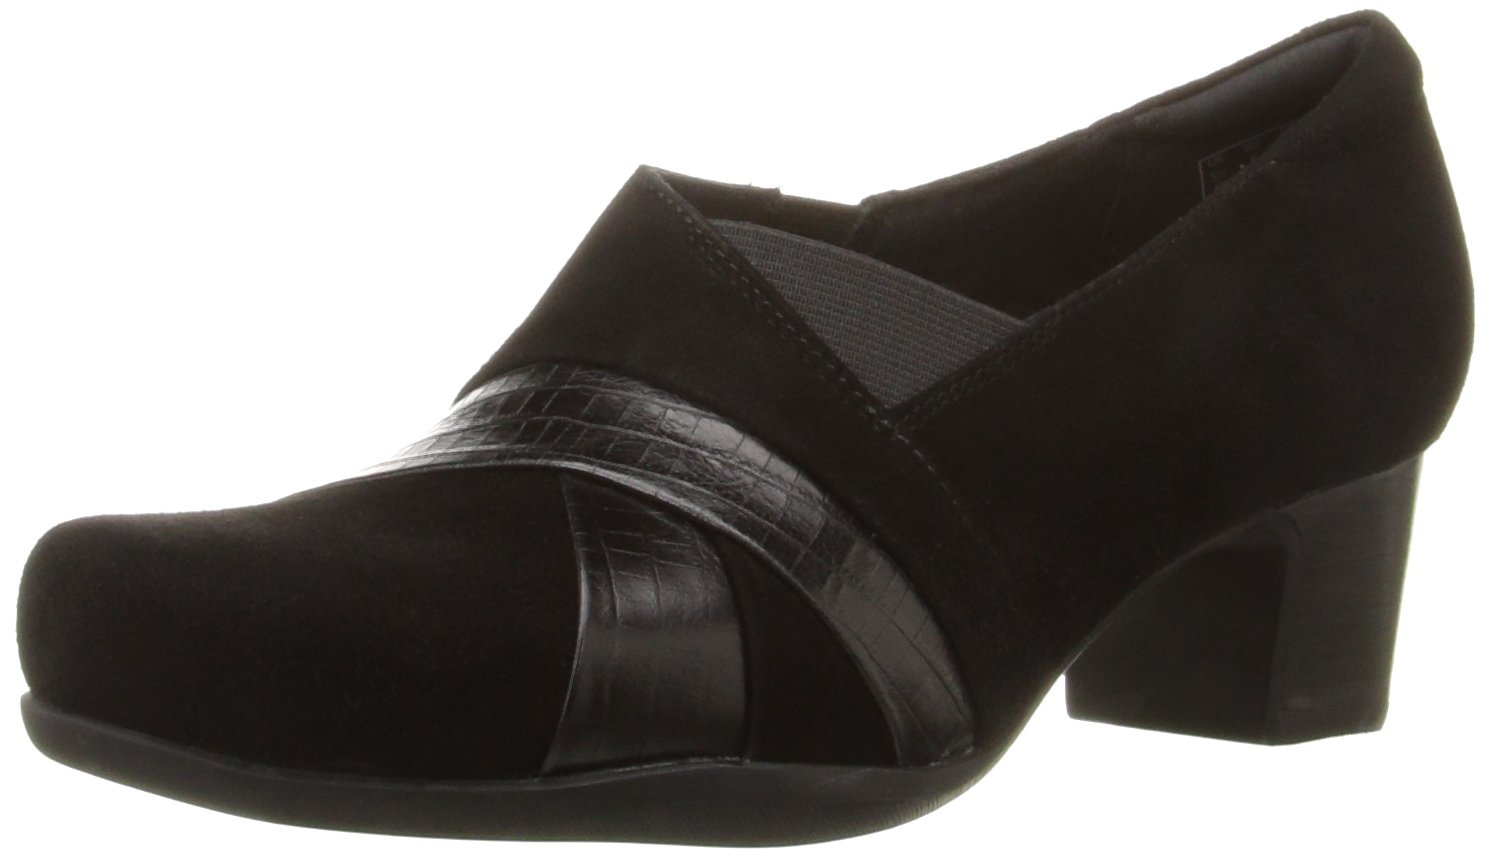 CLARKS Women's Rosalyn Adele Slip-On Loafer B019JYCGOA 9 B(M) US|Black Suede